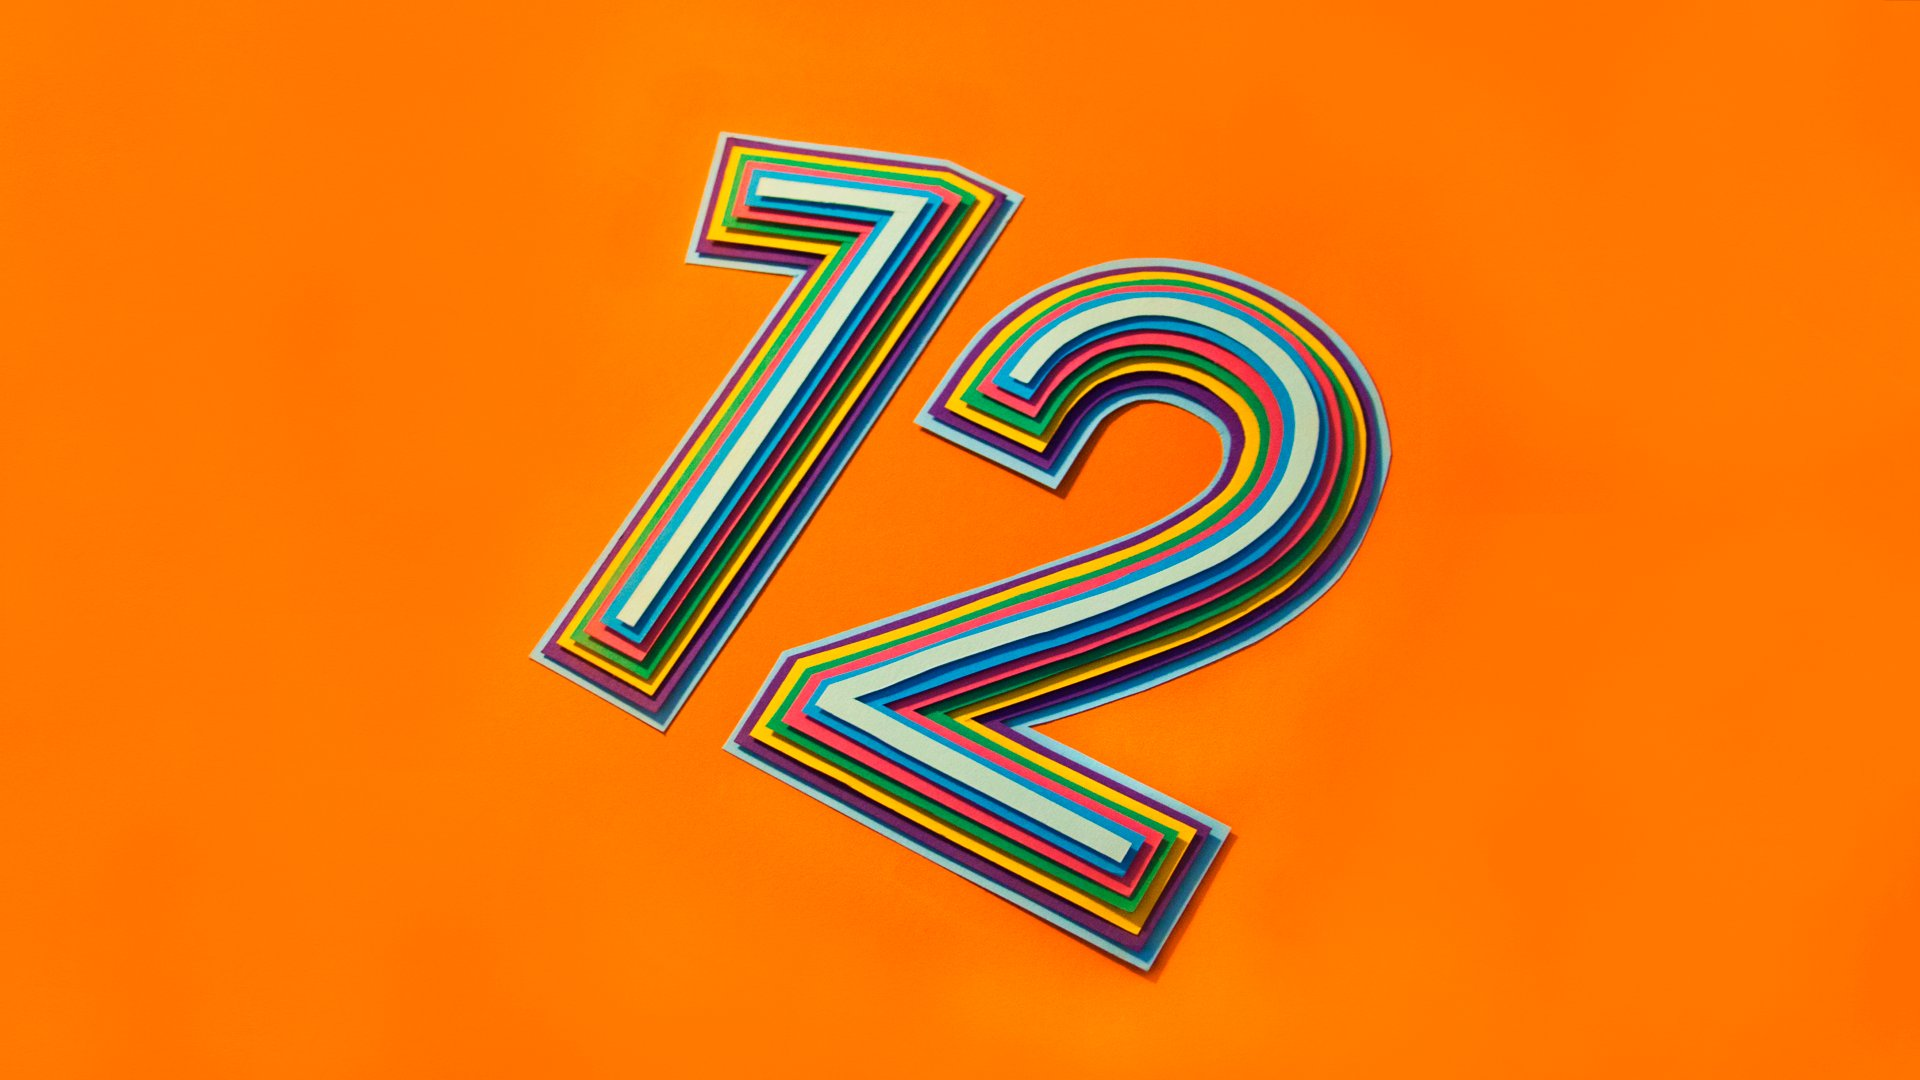 Do you remember when you joined Twitter? I do! #MyTwitterAnniversary   Twelve years ago today, I started Twitter (∩´∀`)∩ https://t.co/RNqSiZf1JD